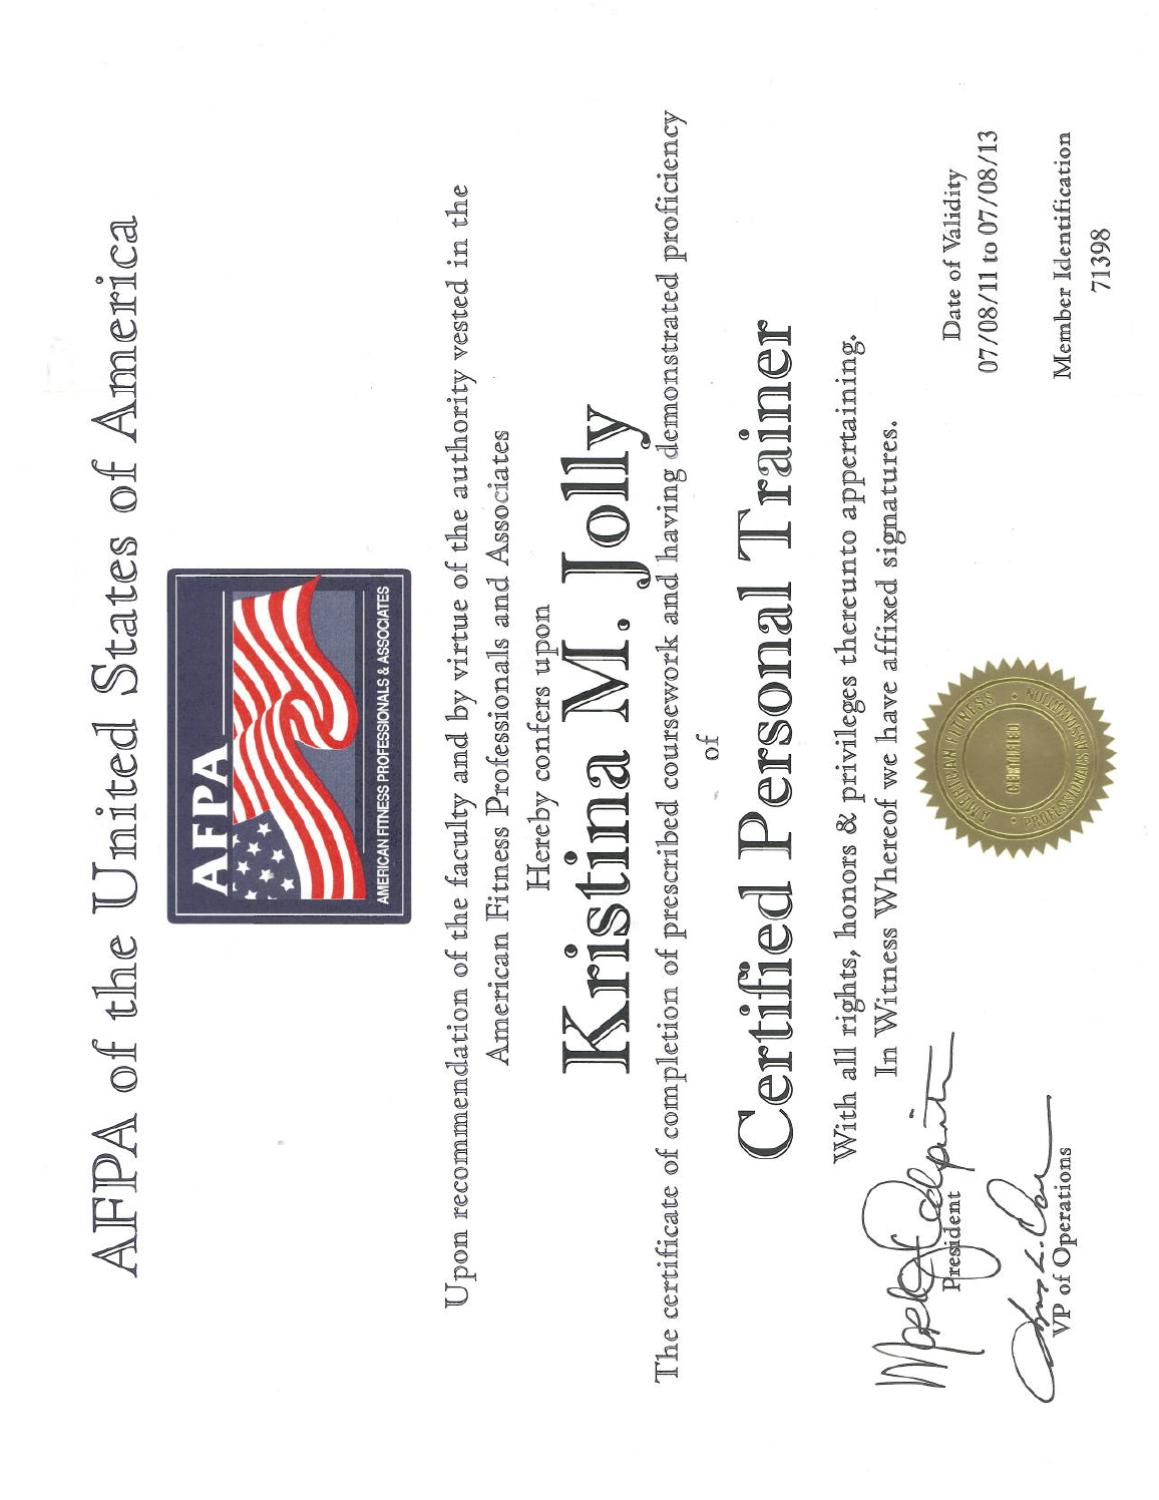 Afpa Personal Trainer Certification By Kristina Jolly Issuu